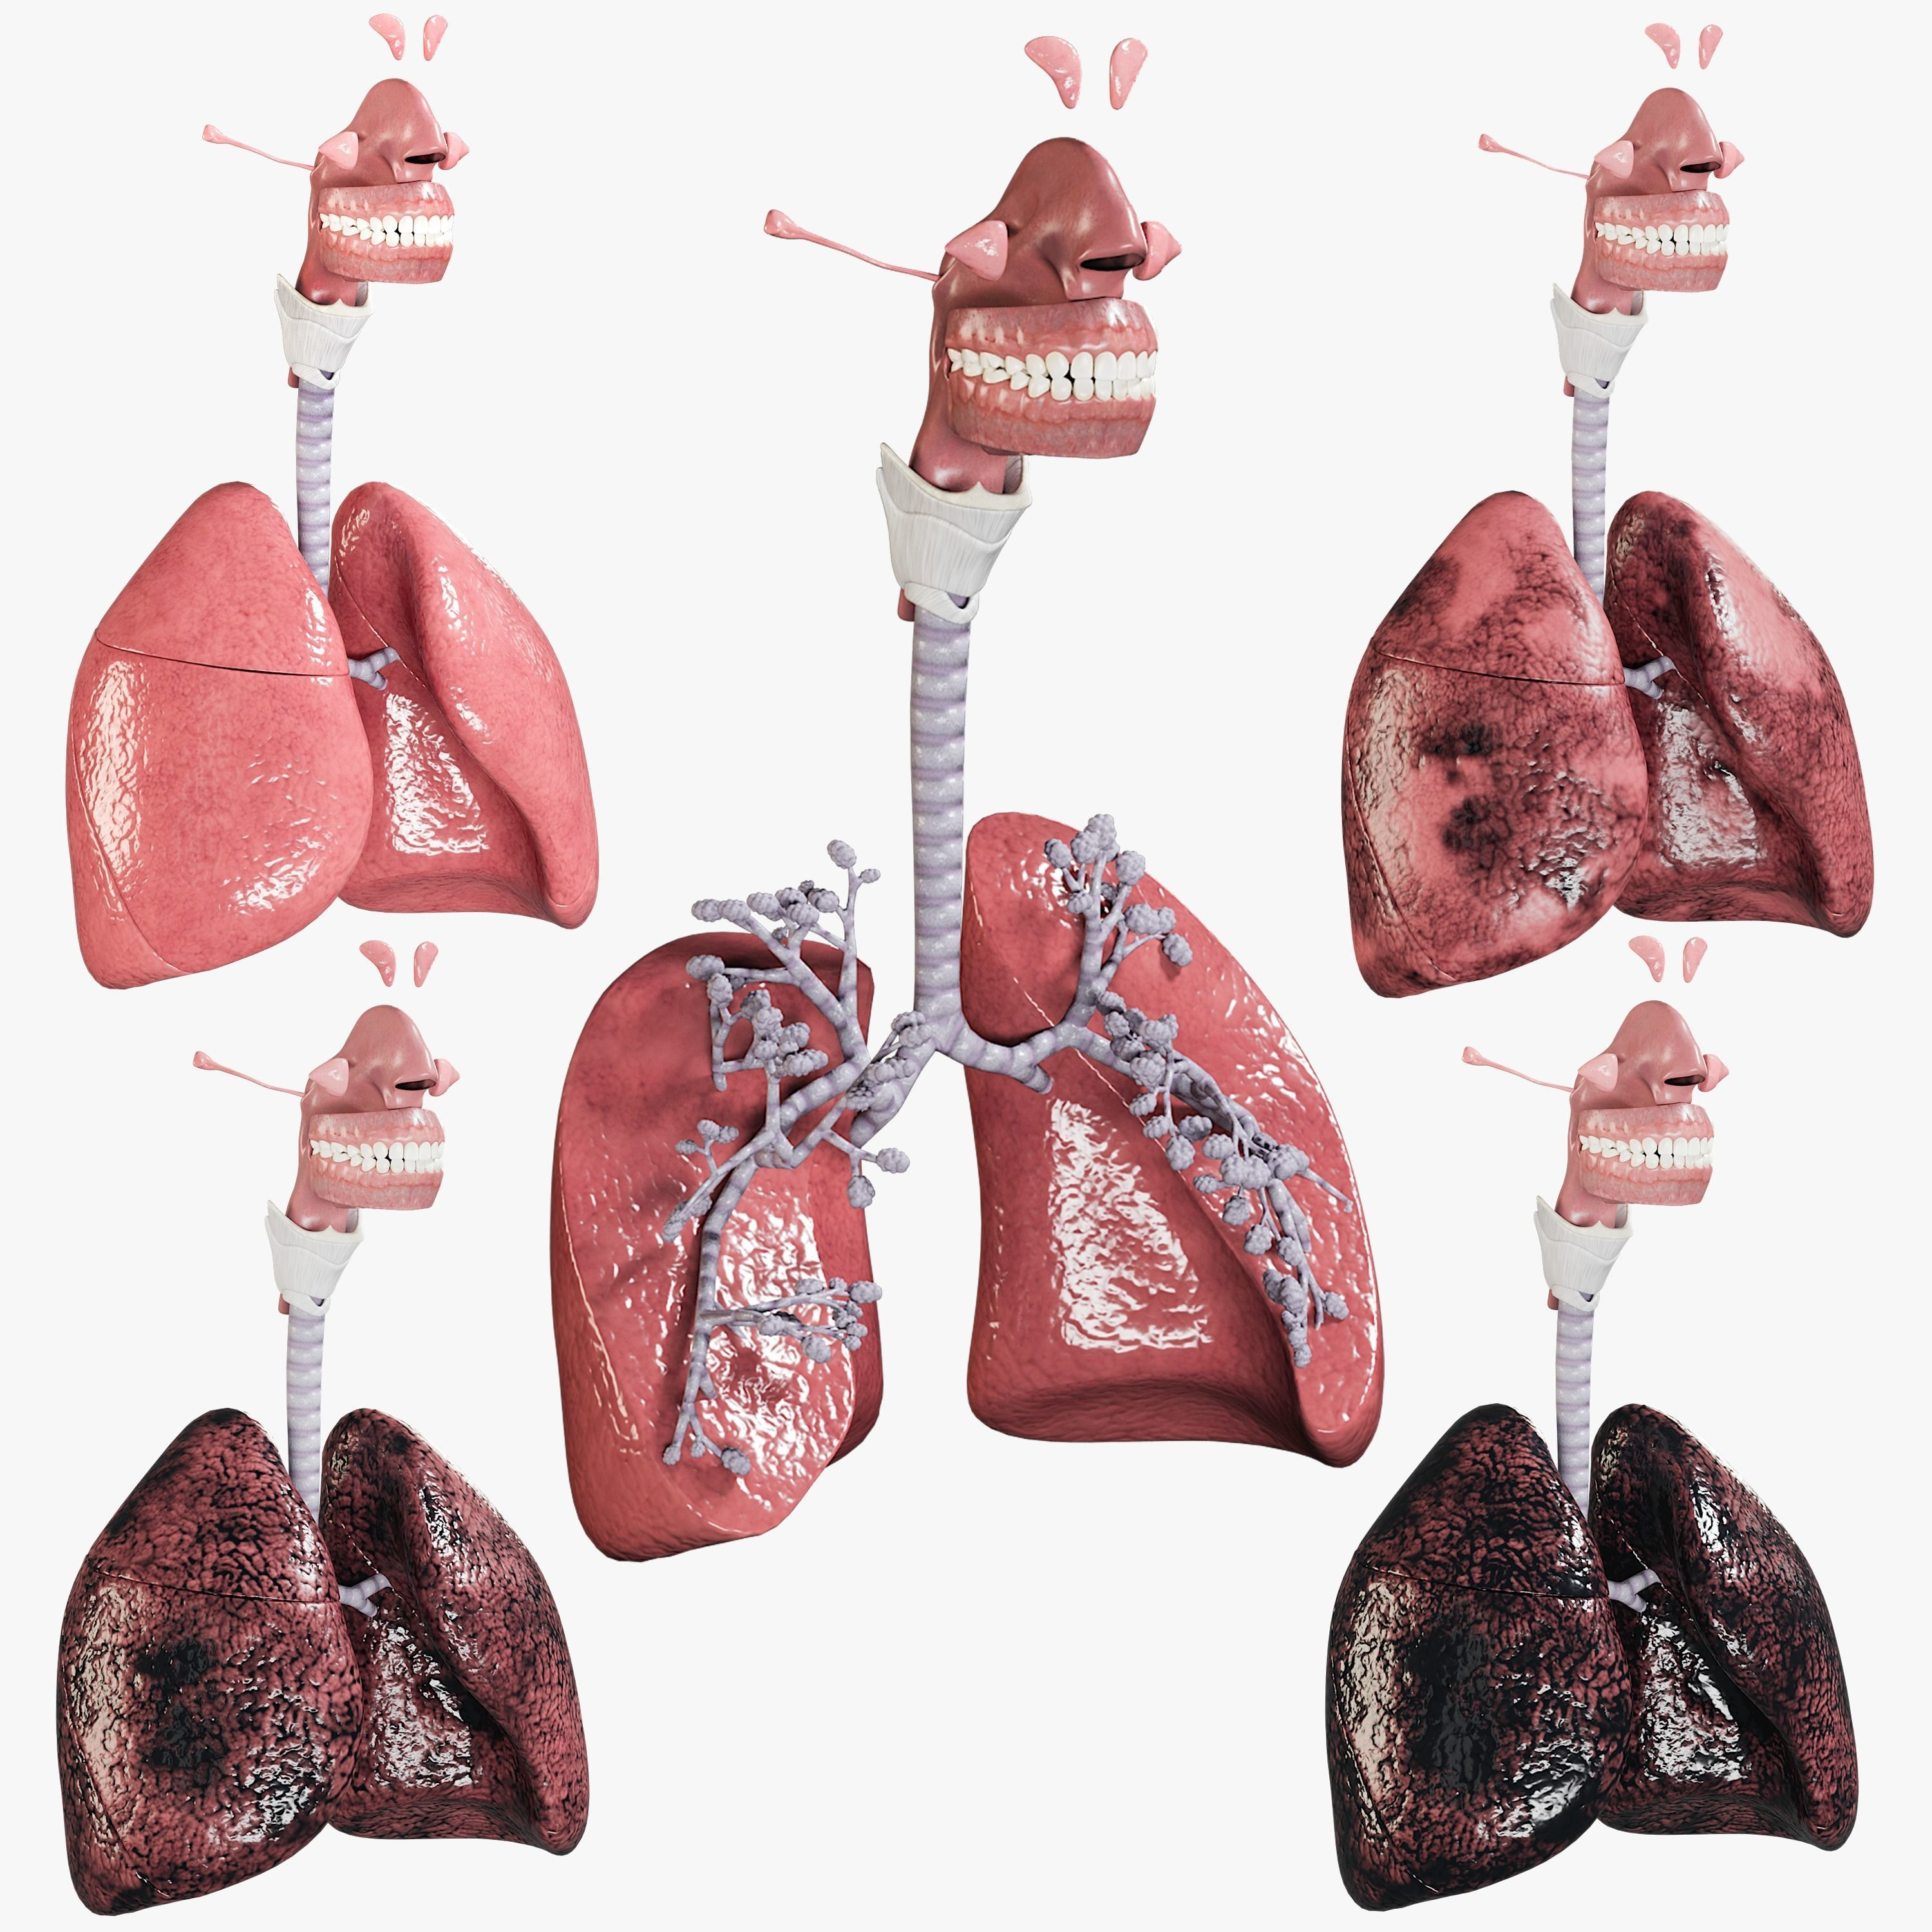 Respiratory System Collection - Smokers Lungs Stages